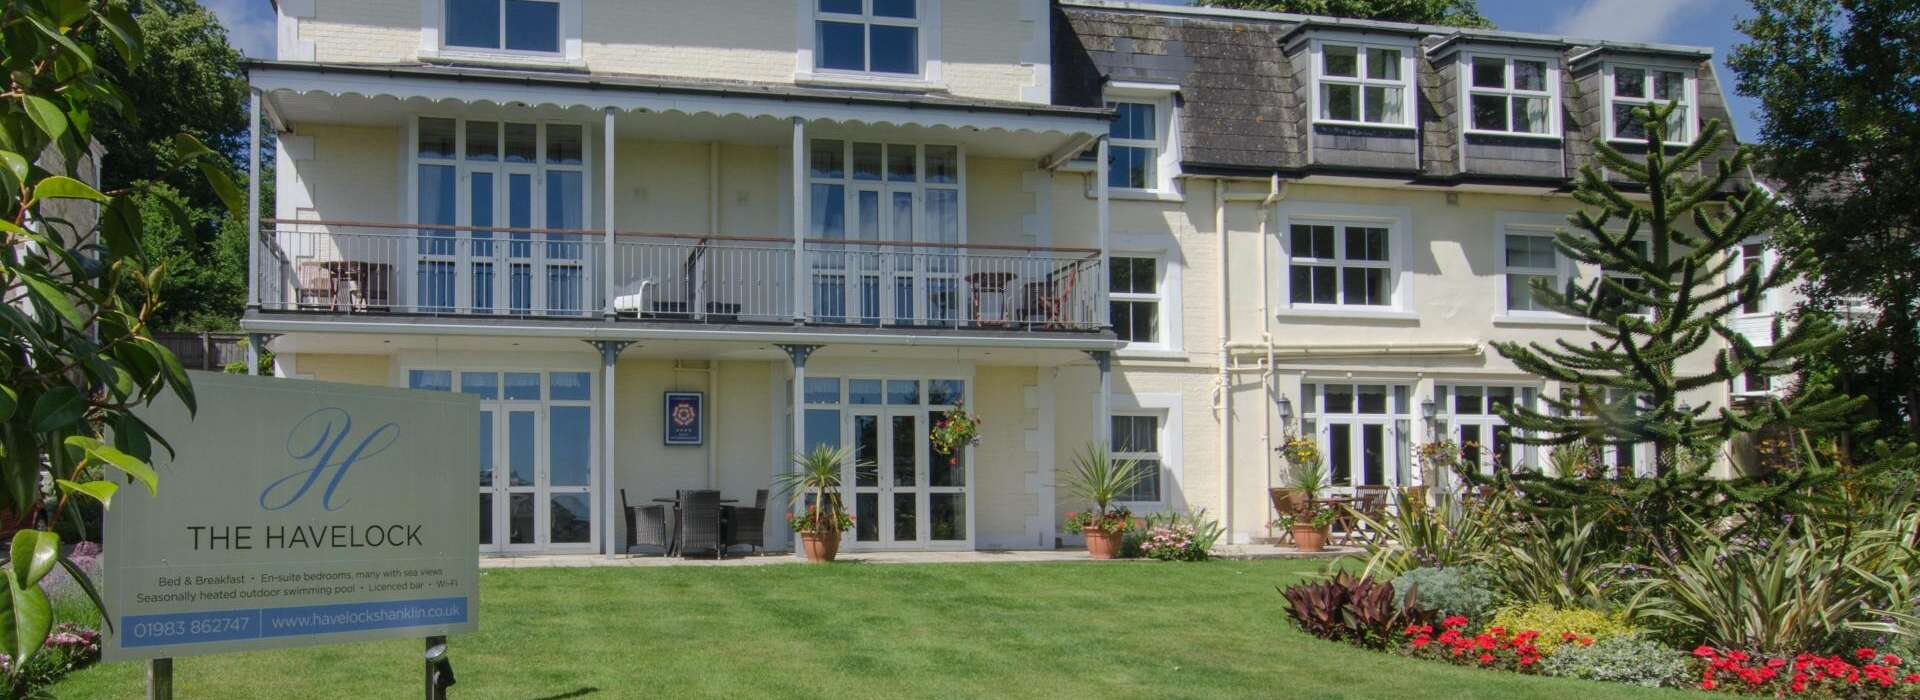 Home - The Havelock, Guest Accommodation in Shanklin